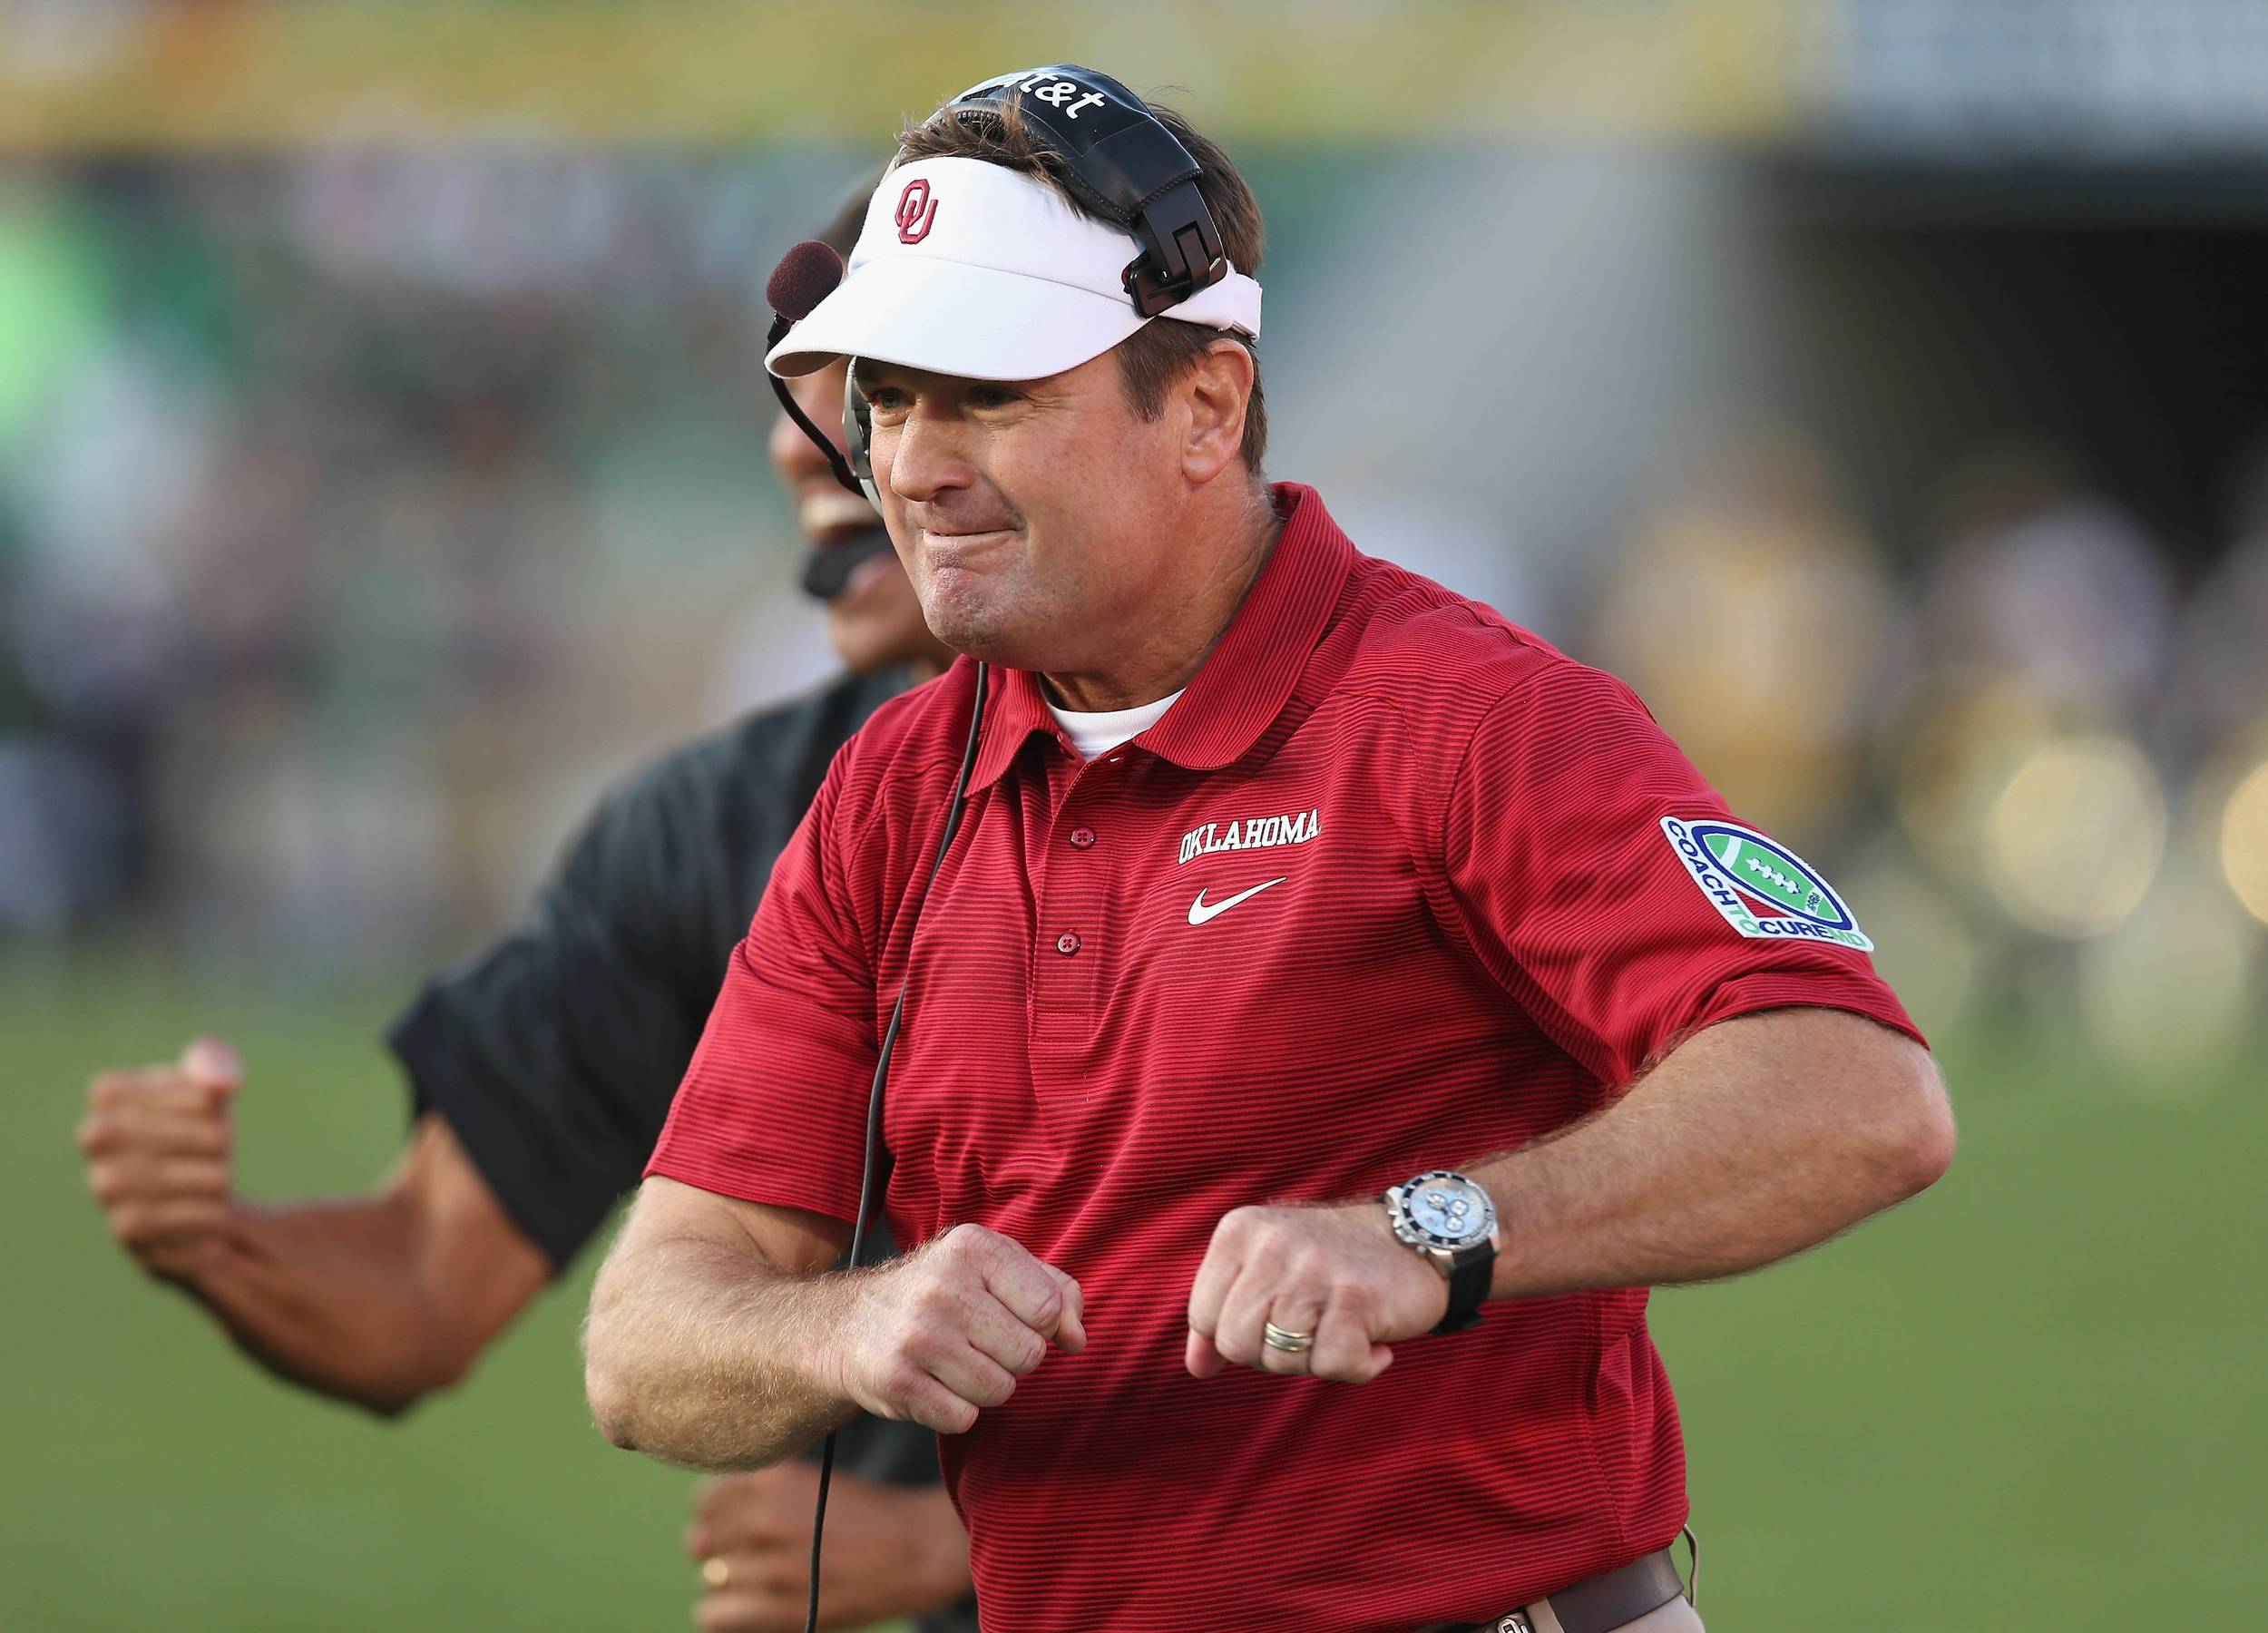 Not the best week for Bob Stoops. (Photo courtesy: dallasnews.com)